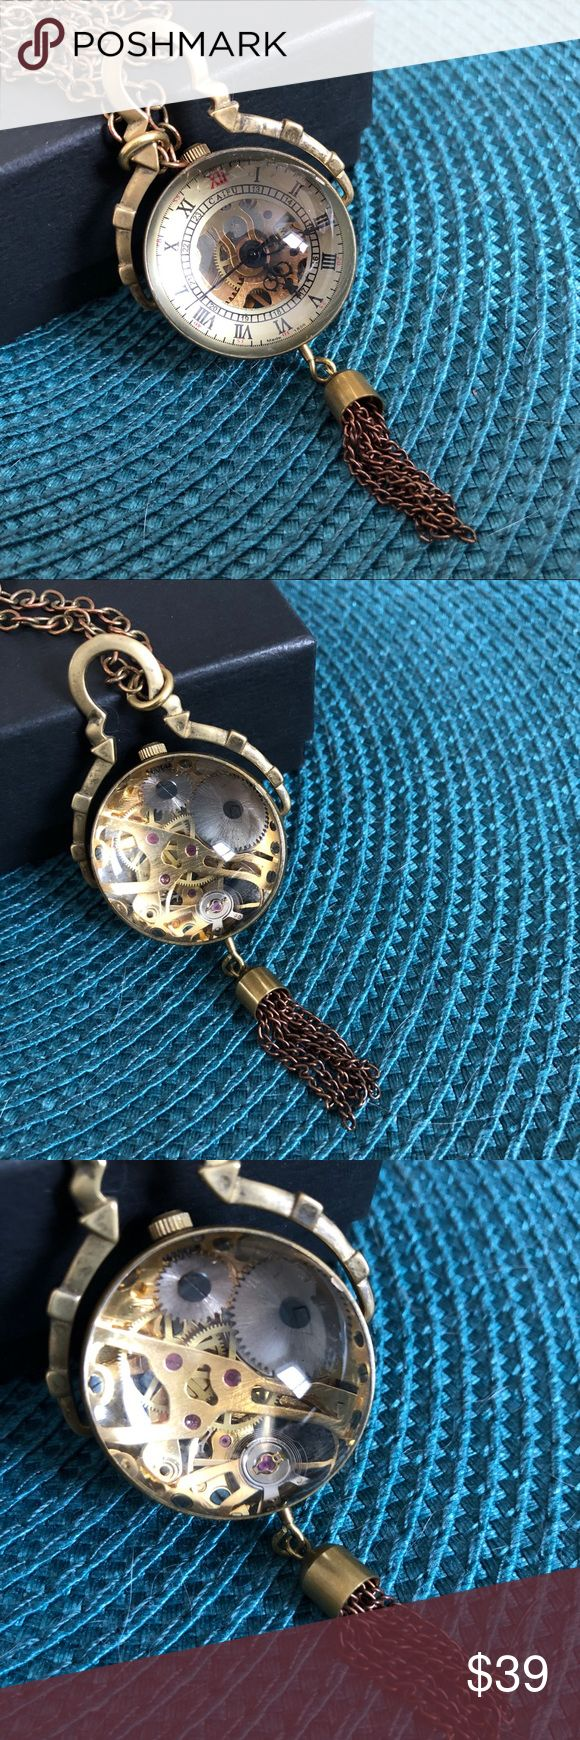 Clock Necklace Exposed Gears Watch Steampunk Brass Rustic vintage appeal with this feminine alternative to a pocket watch. Clock winds up to reveal the inner workings of the gears. Beautiful and fascinating, a lovely conversation piece. Jewelry Necklaces